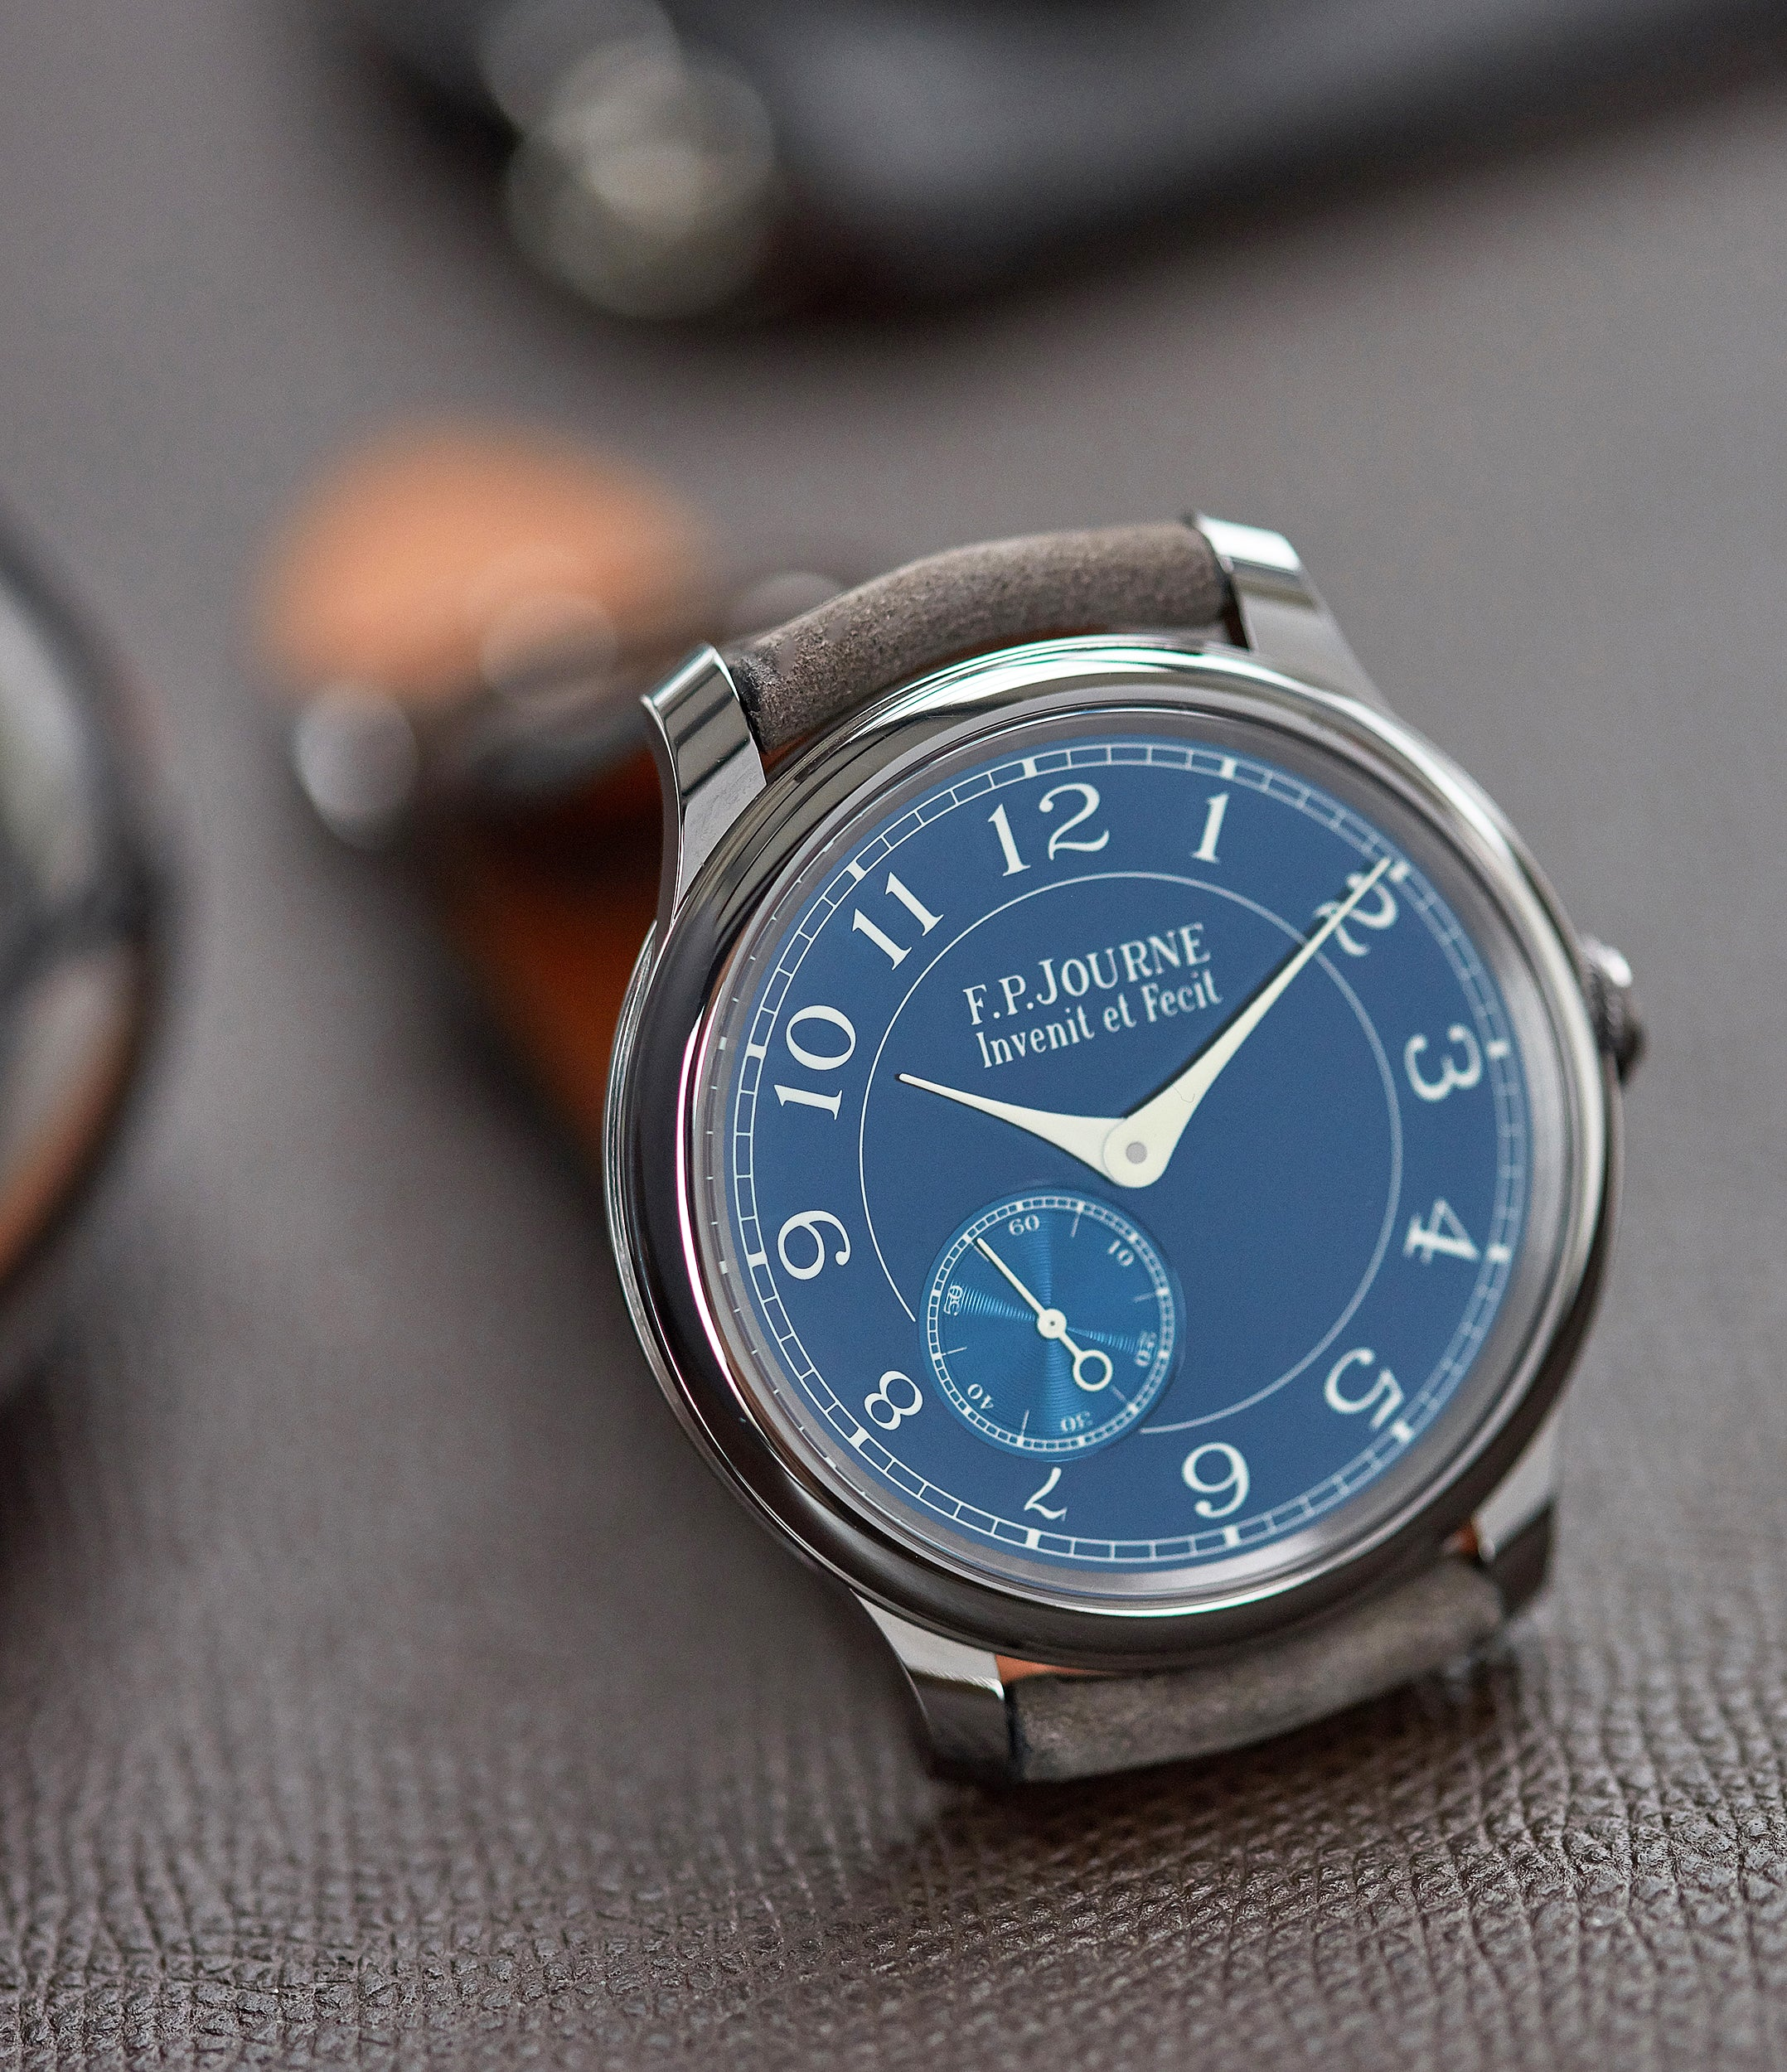 Journe Chronometre Bleu tantalum blue dial rare dress watch for sale online at A Collected Man London approved reseller of independent watchmakers